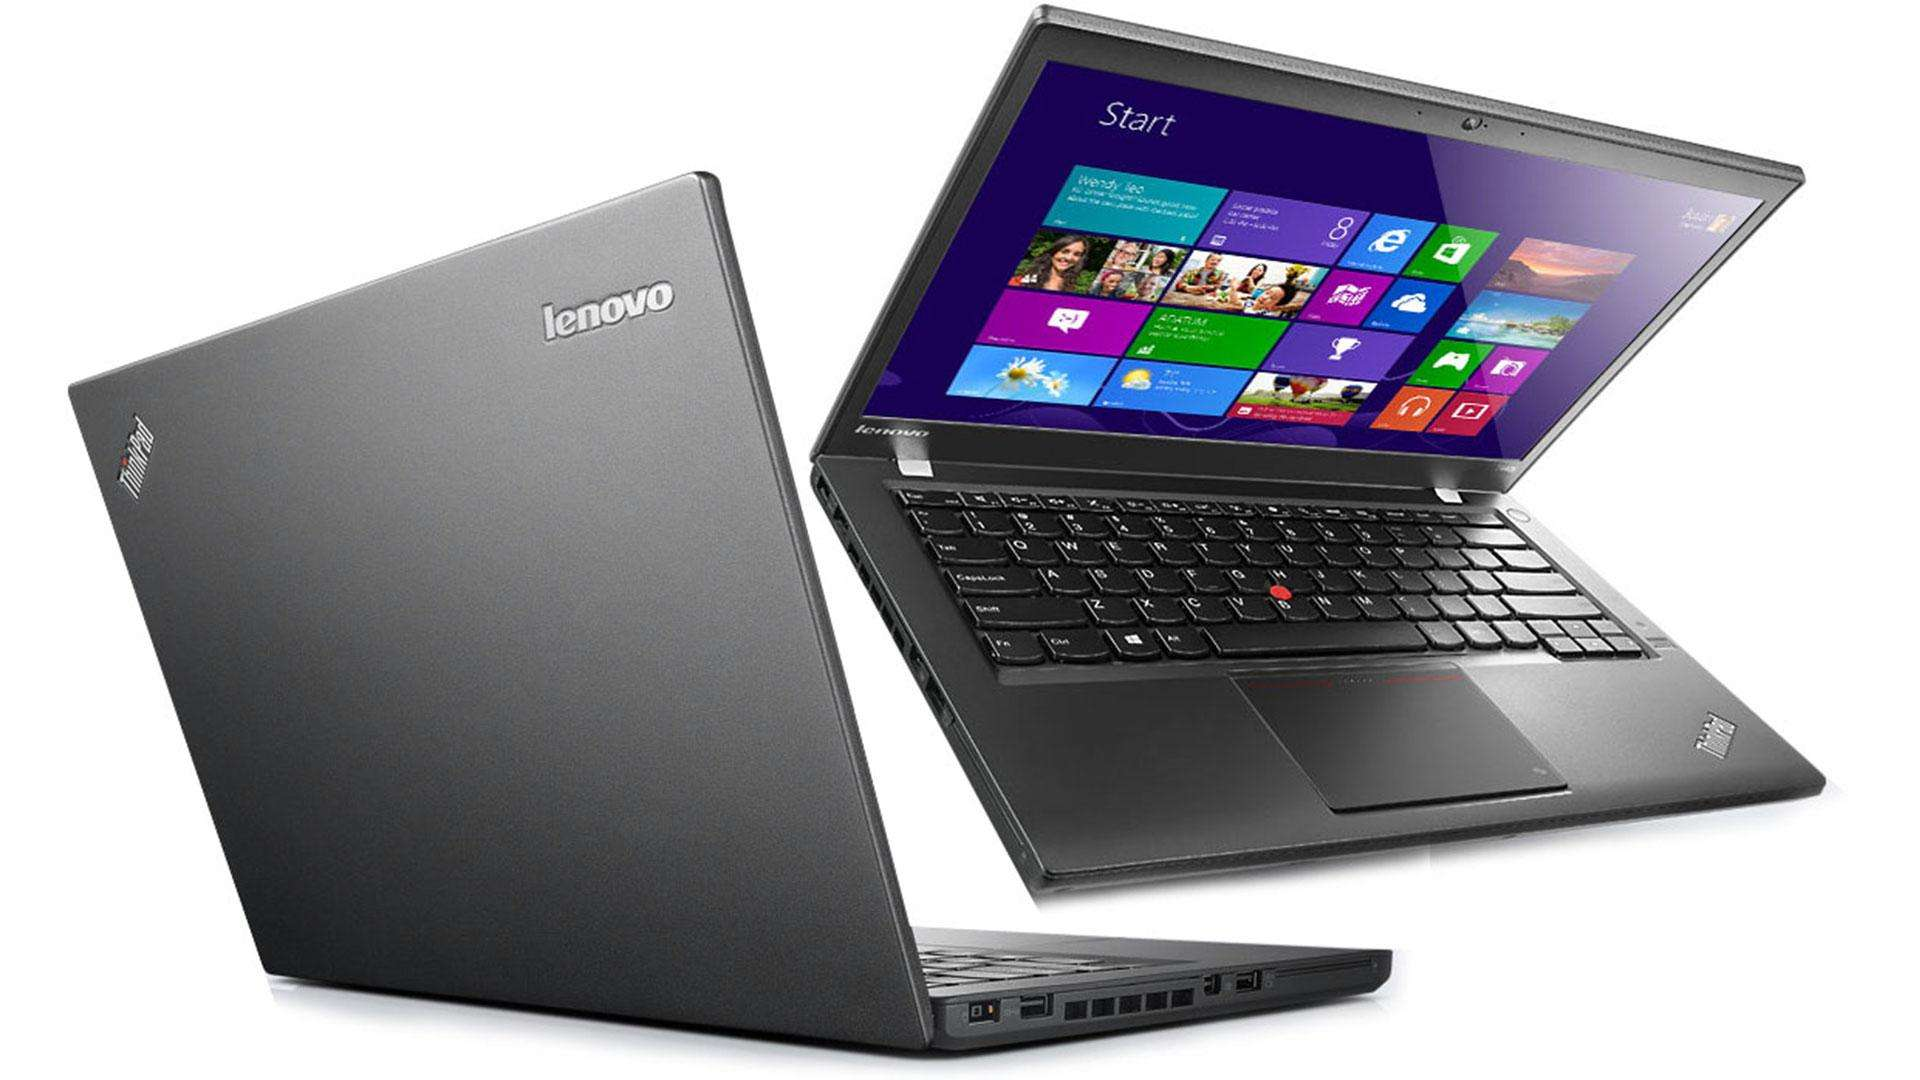 Lenovo ThinkPad T440 Core i5 4300U/ Ram 4GB / HDD 320 GB/ Màn 14inh